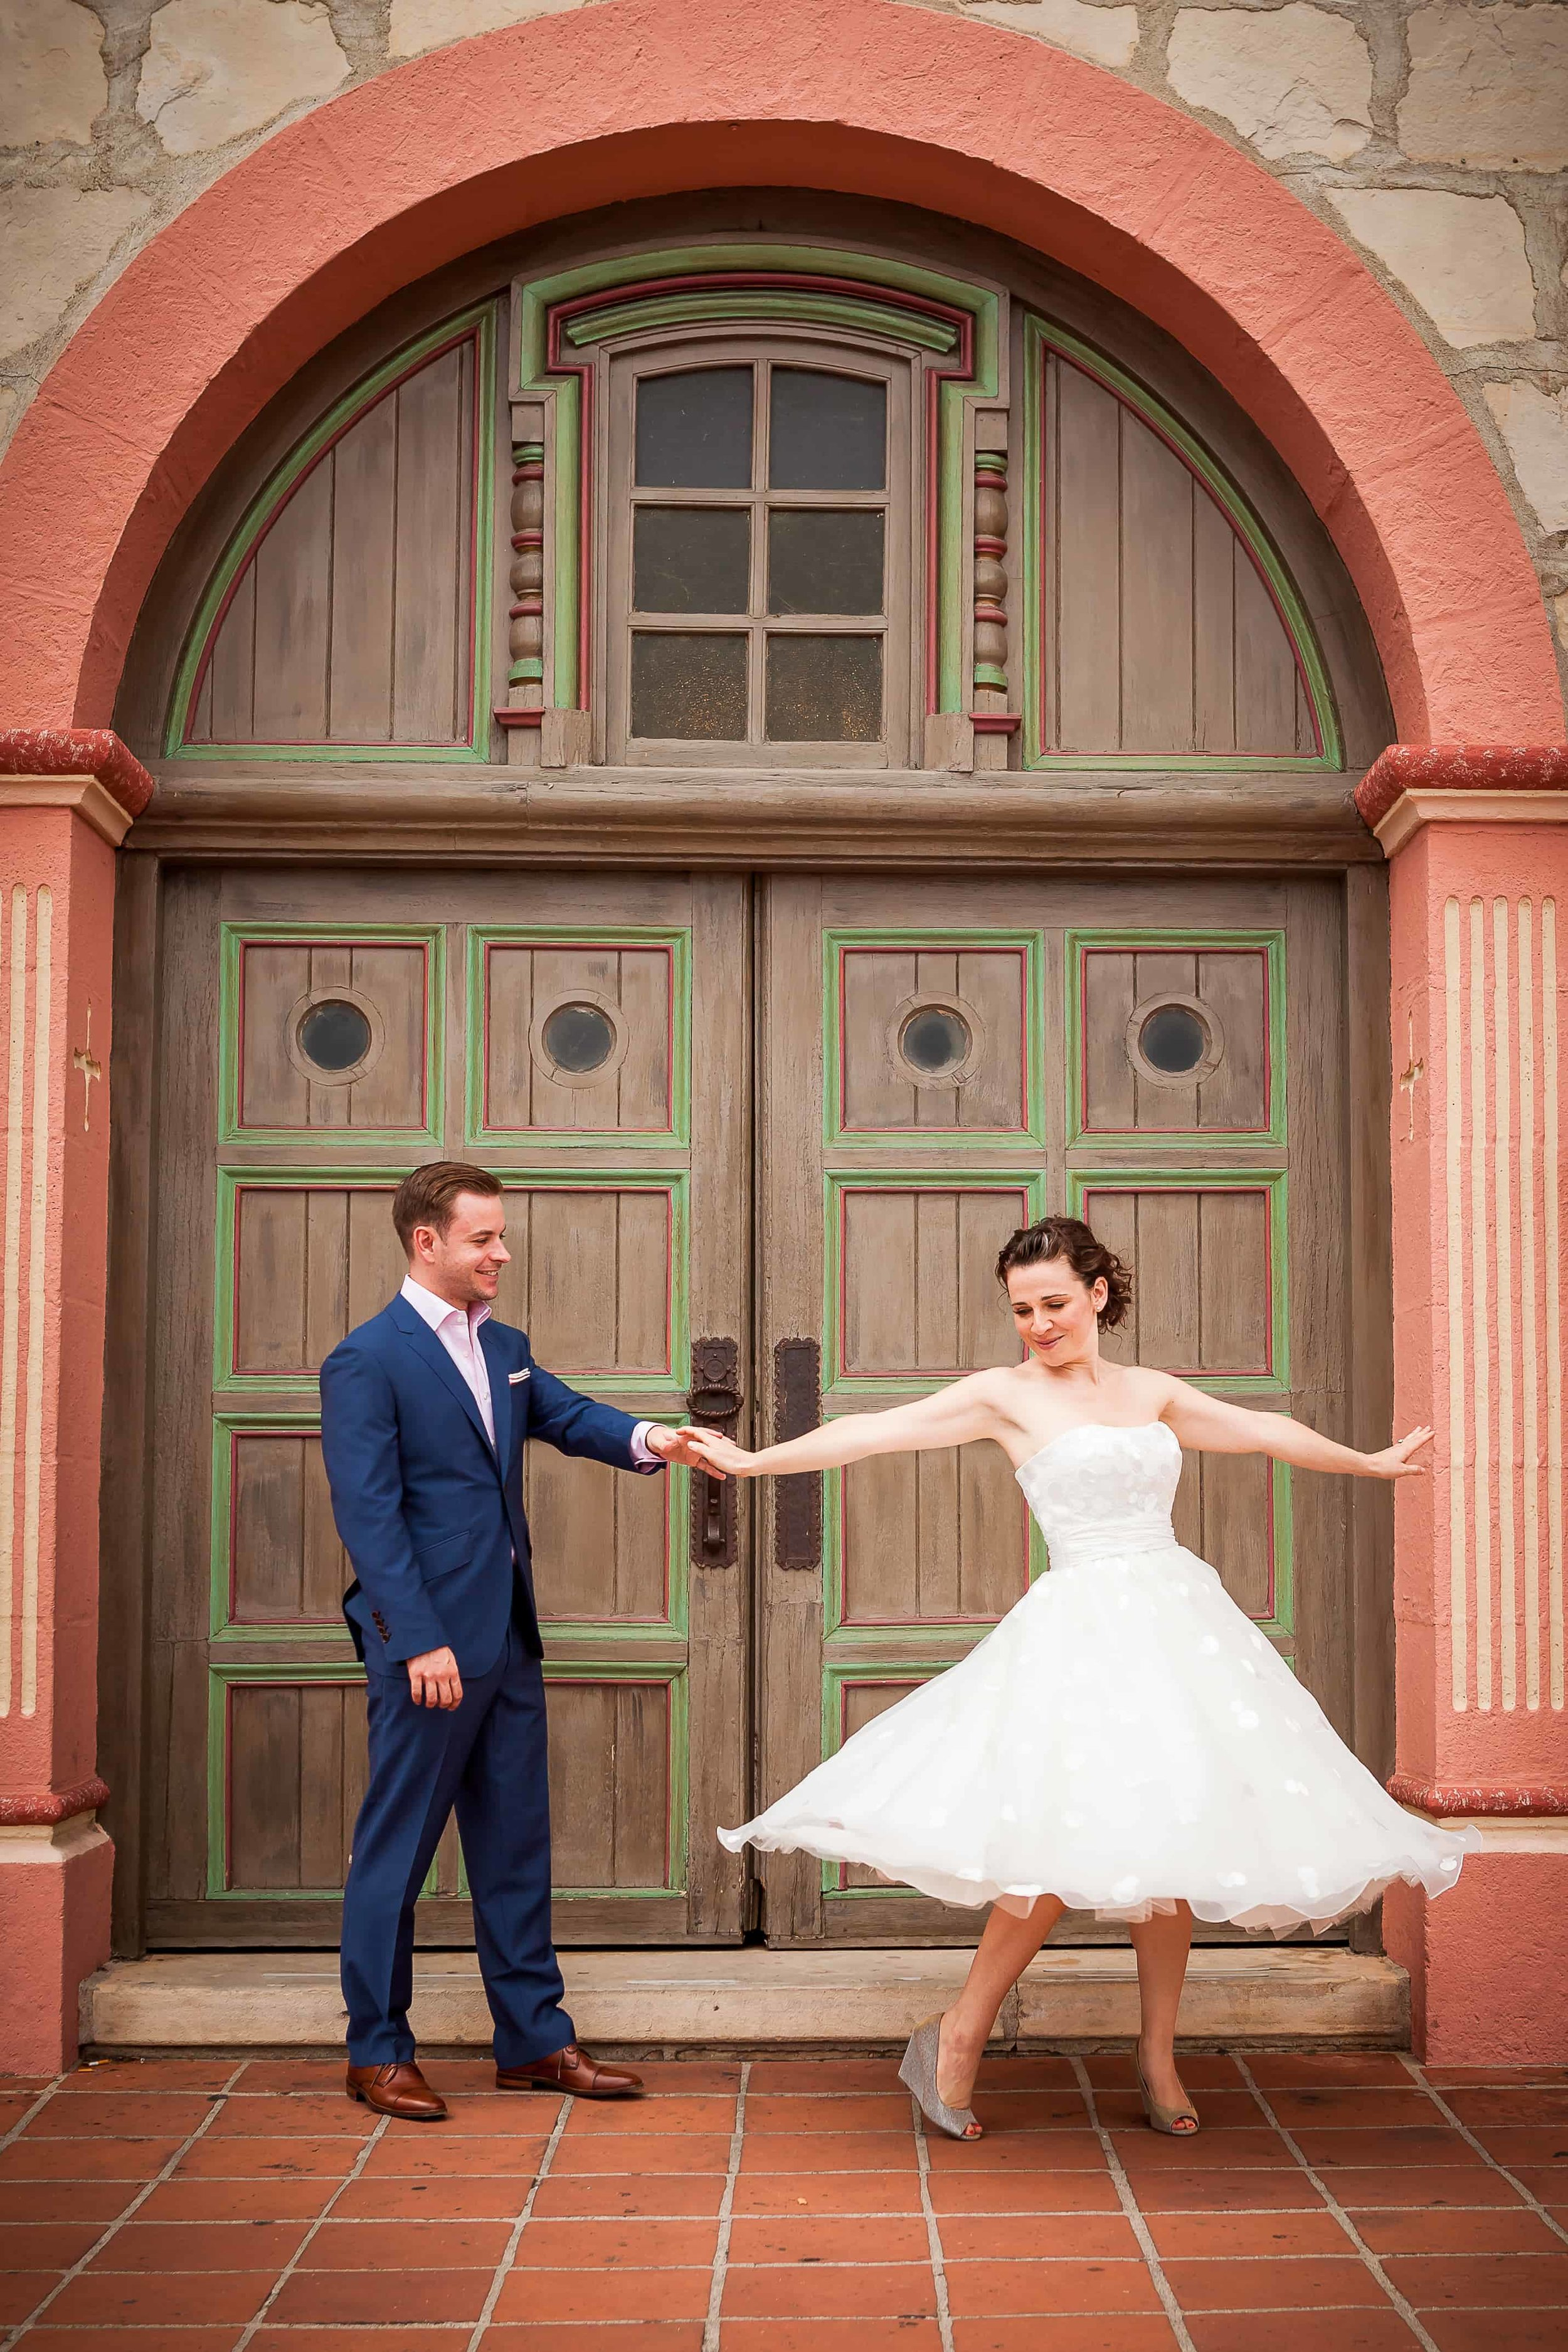 """""""[The photos] are wonderful. I usually really hate photos of myself, but these are great. [Libby is] a magician!"""" - —Maria, Bride"""